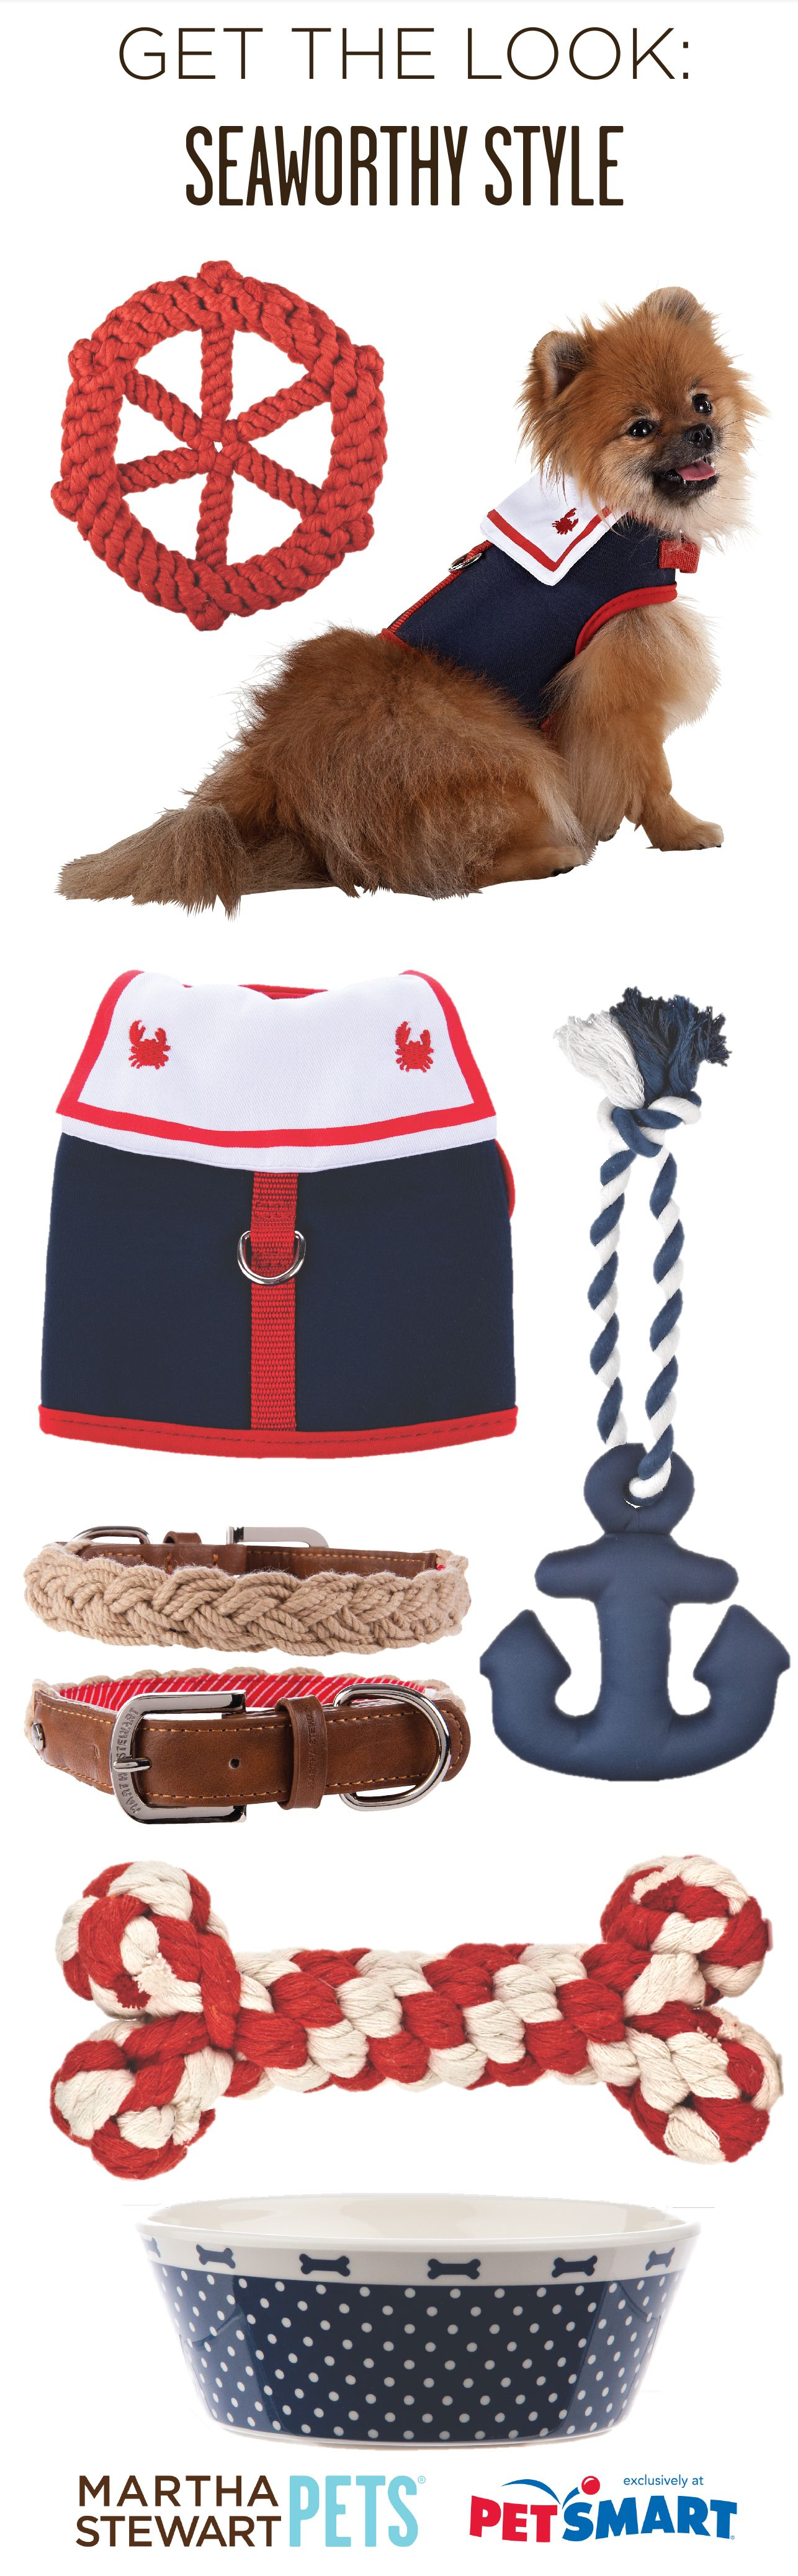 get the look seaworthy style pets pinterest dog animal and